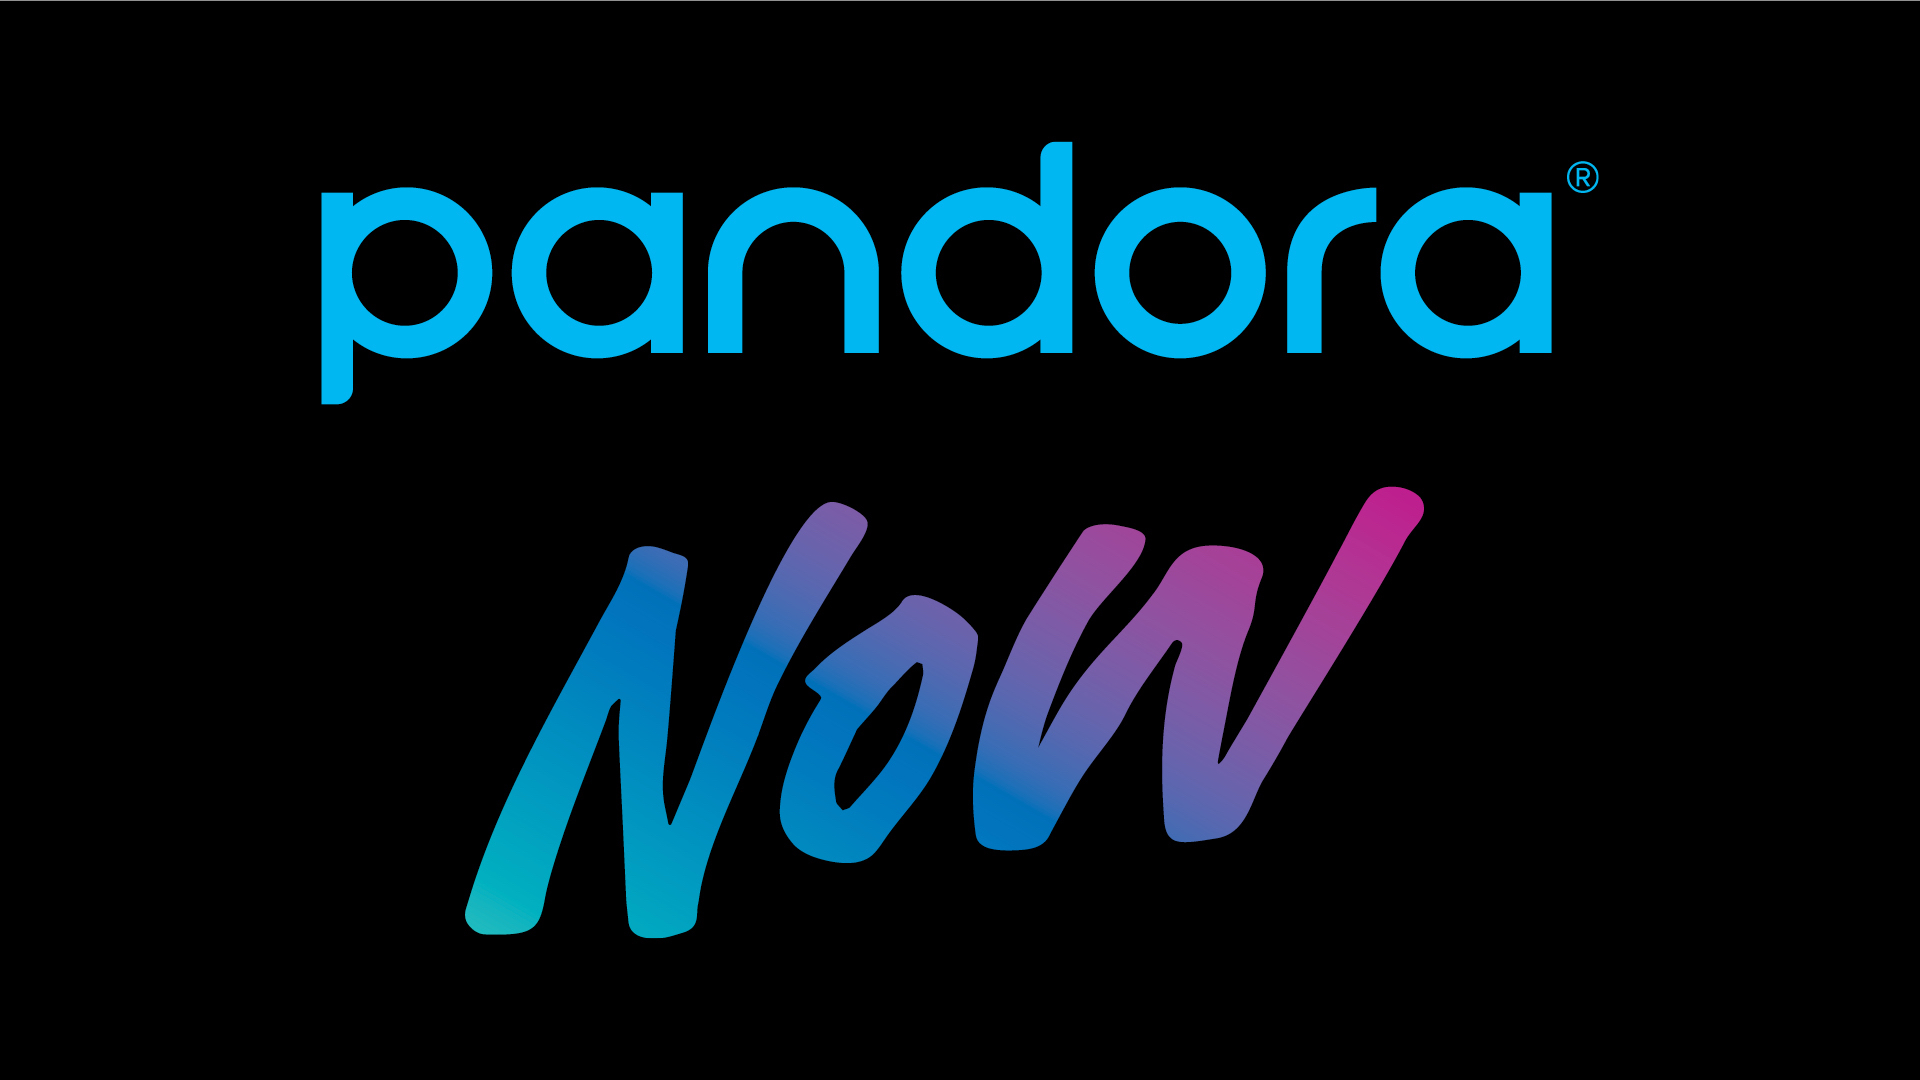 SiriusXM and Pandora Launch Pandora Now